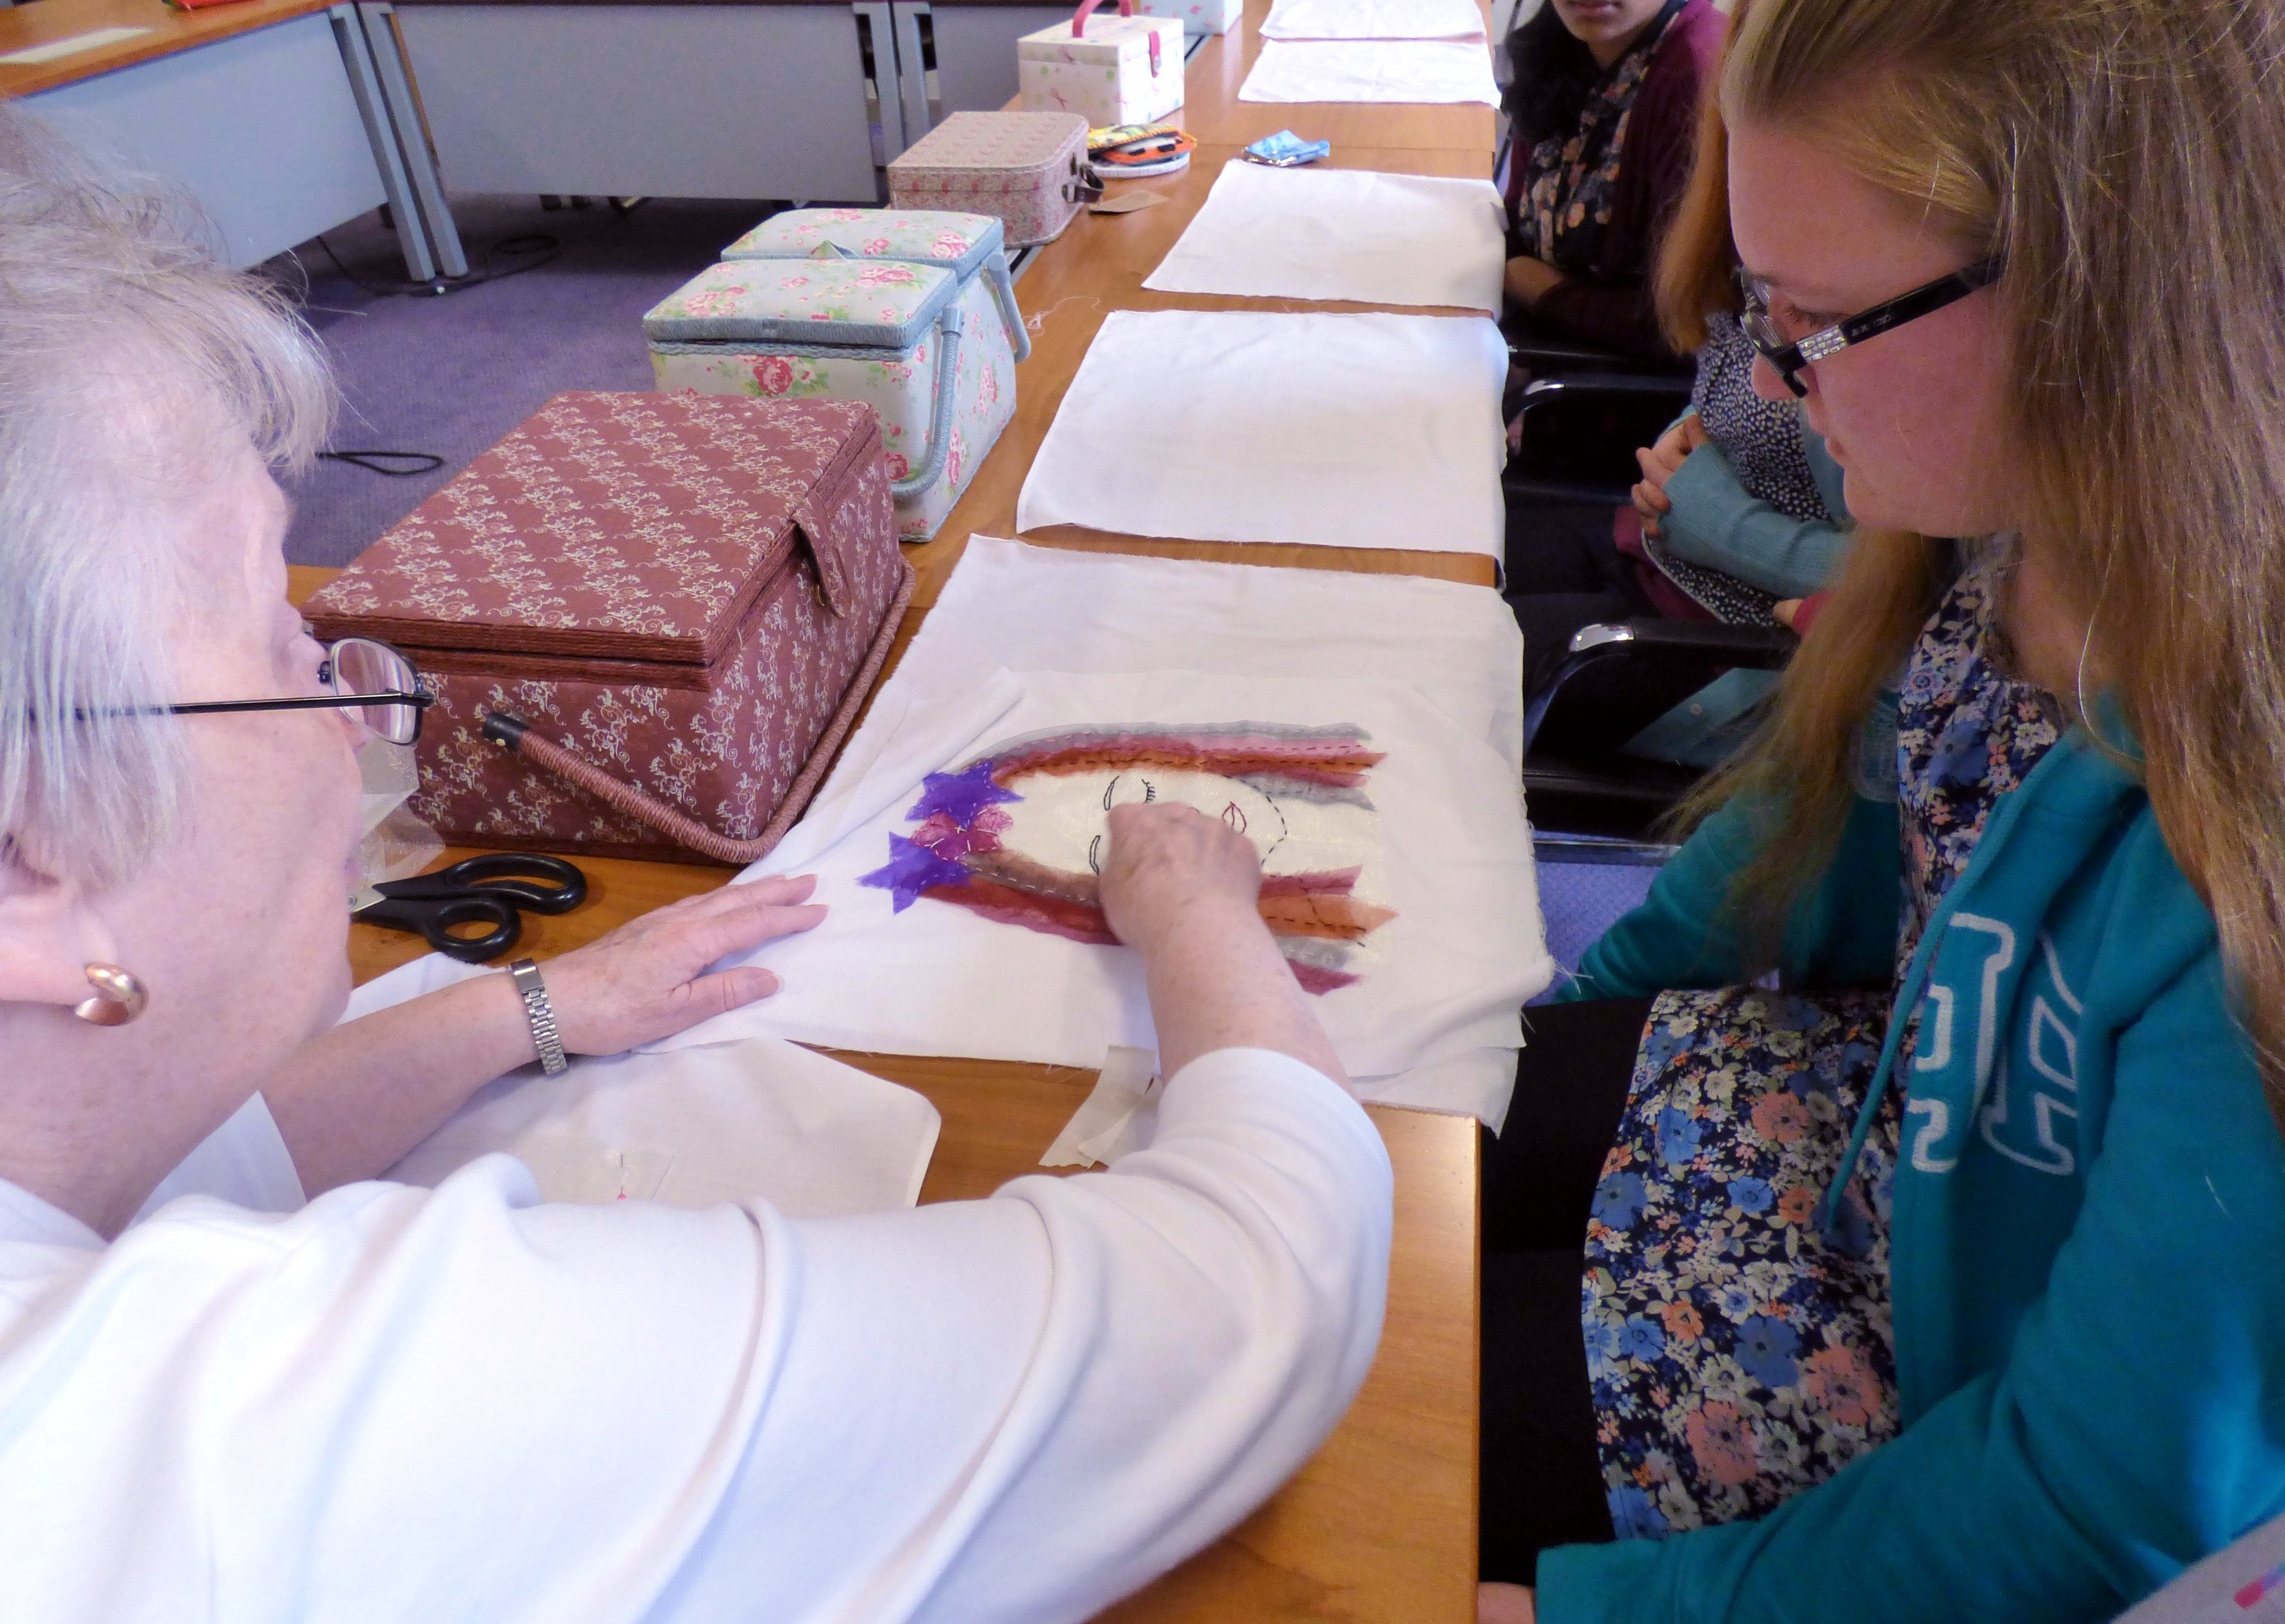 Val Heron is showing our YE group how to make this embroidery